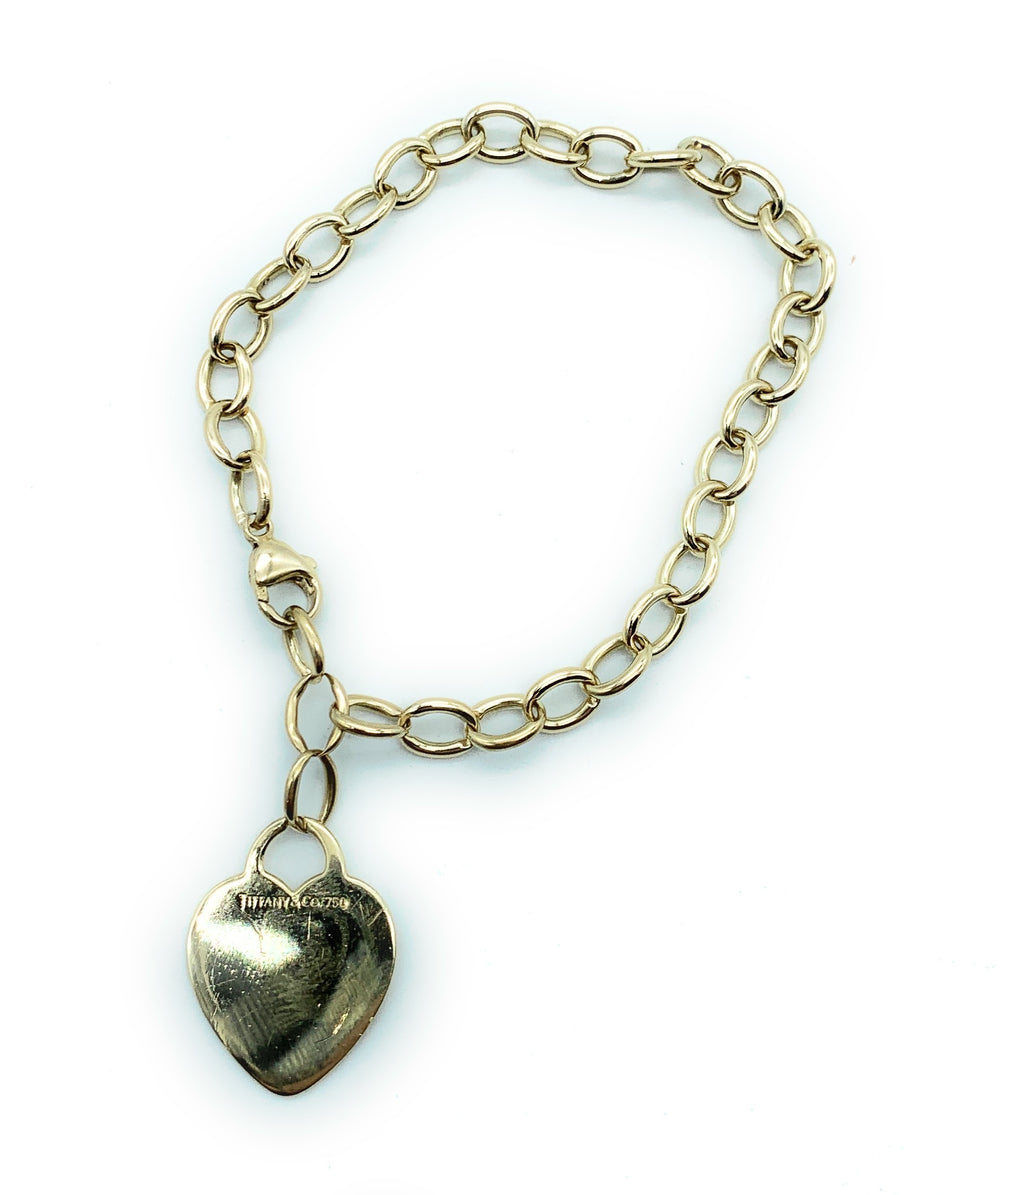 Tiffany & Co. 18K Yellow Gold Heart Tag Bracelet - 7.5""